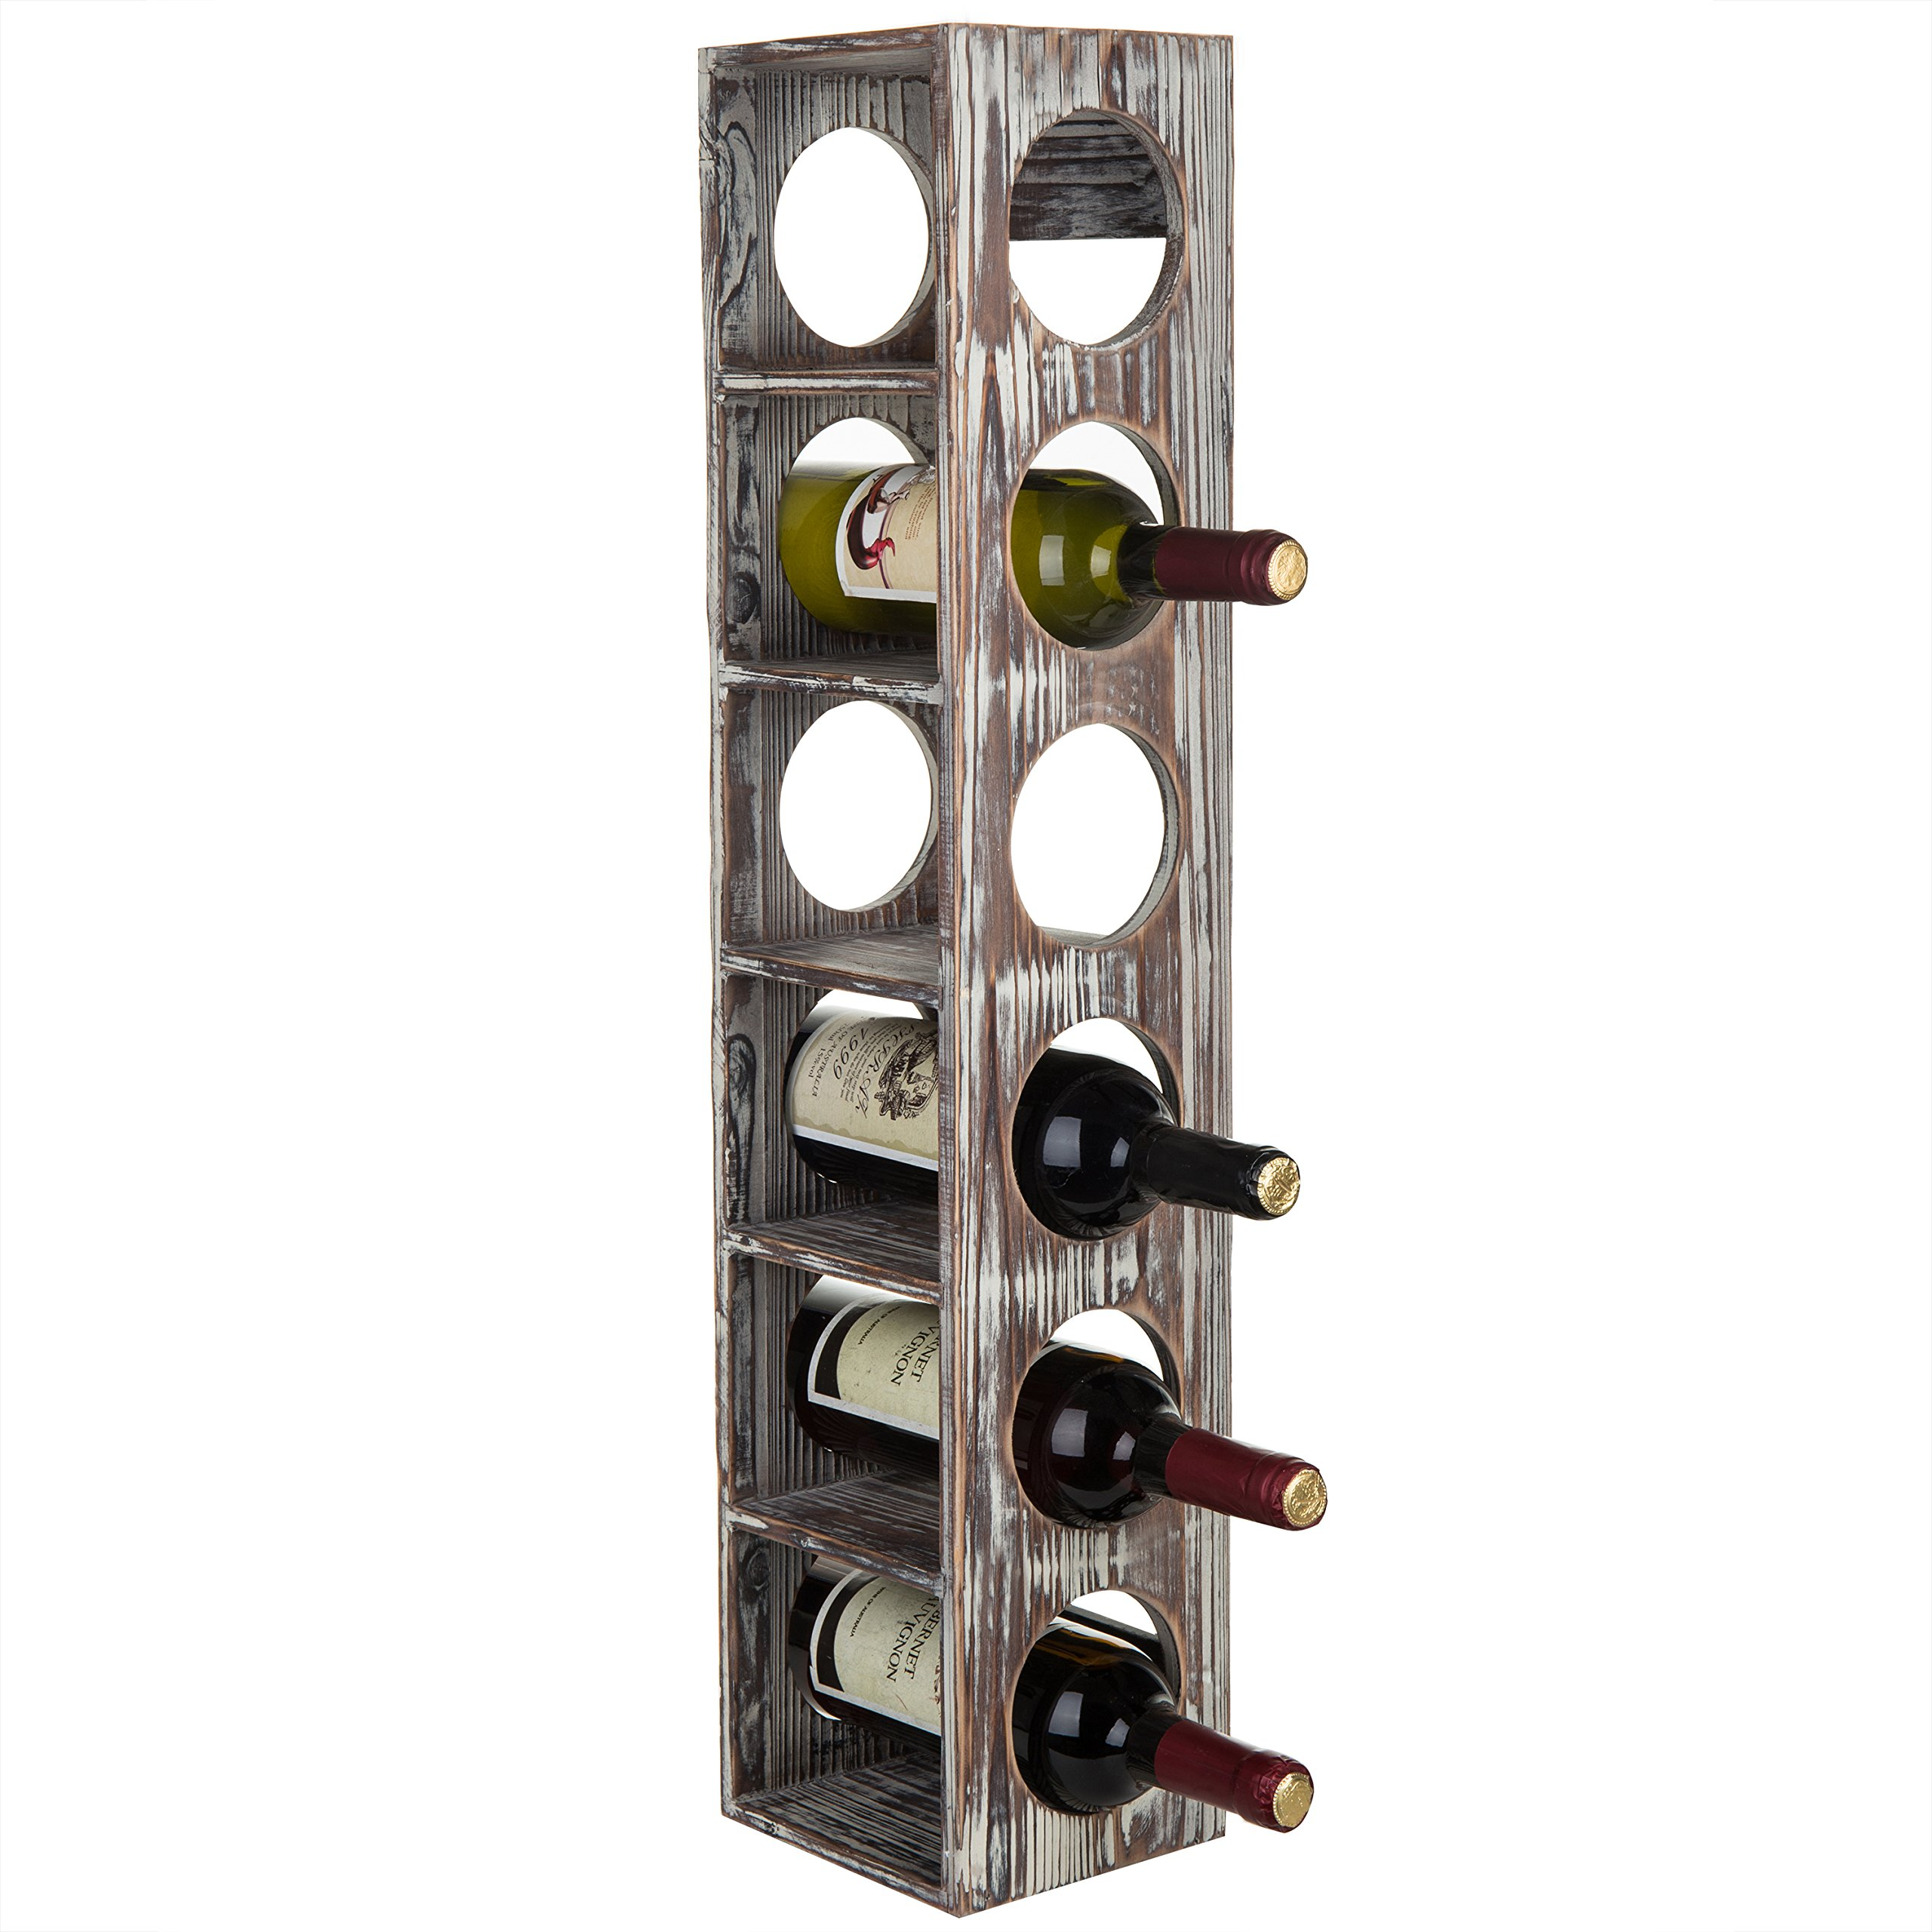 MyGift 6-Bottle Rustic Torched Wood Wall-Mounted Wine Rack